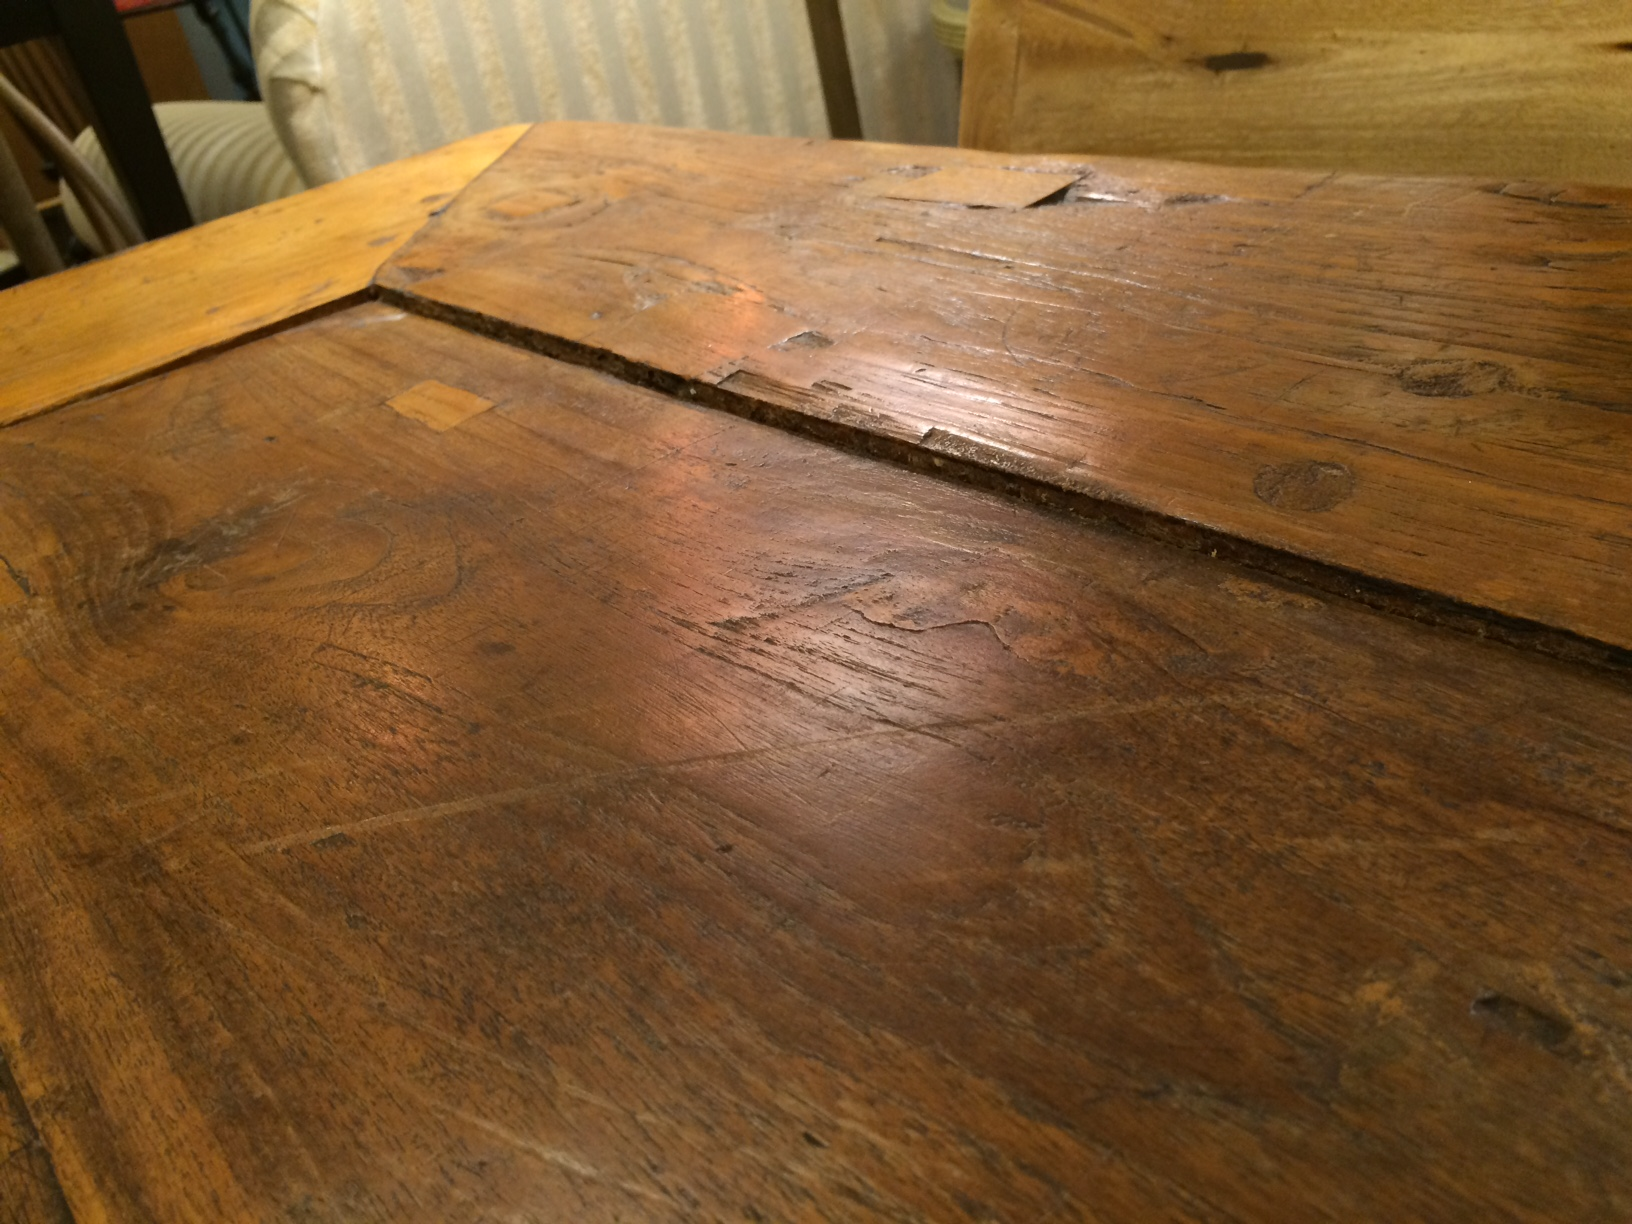 659 furniture repair Portland Oregon farmhouse table before 016